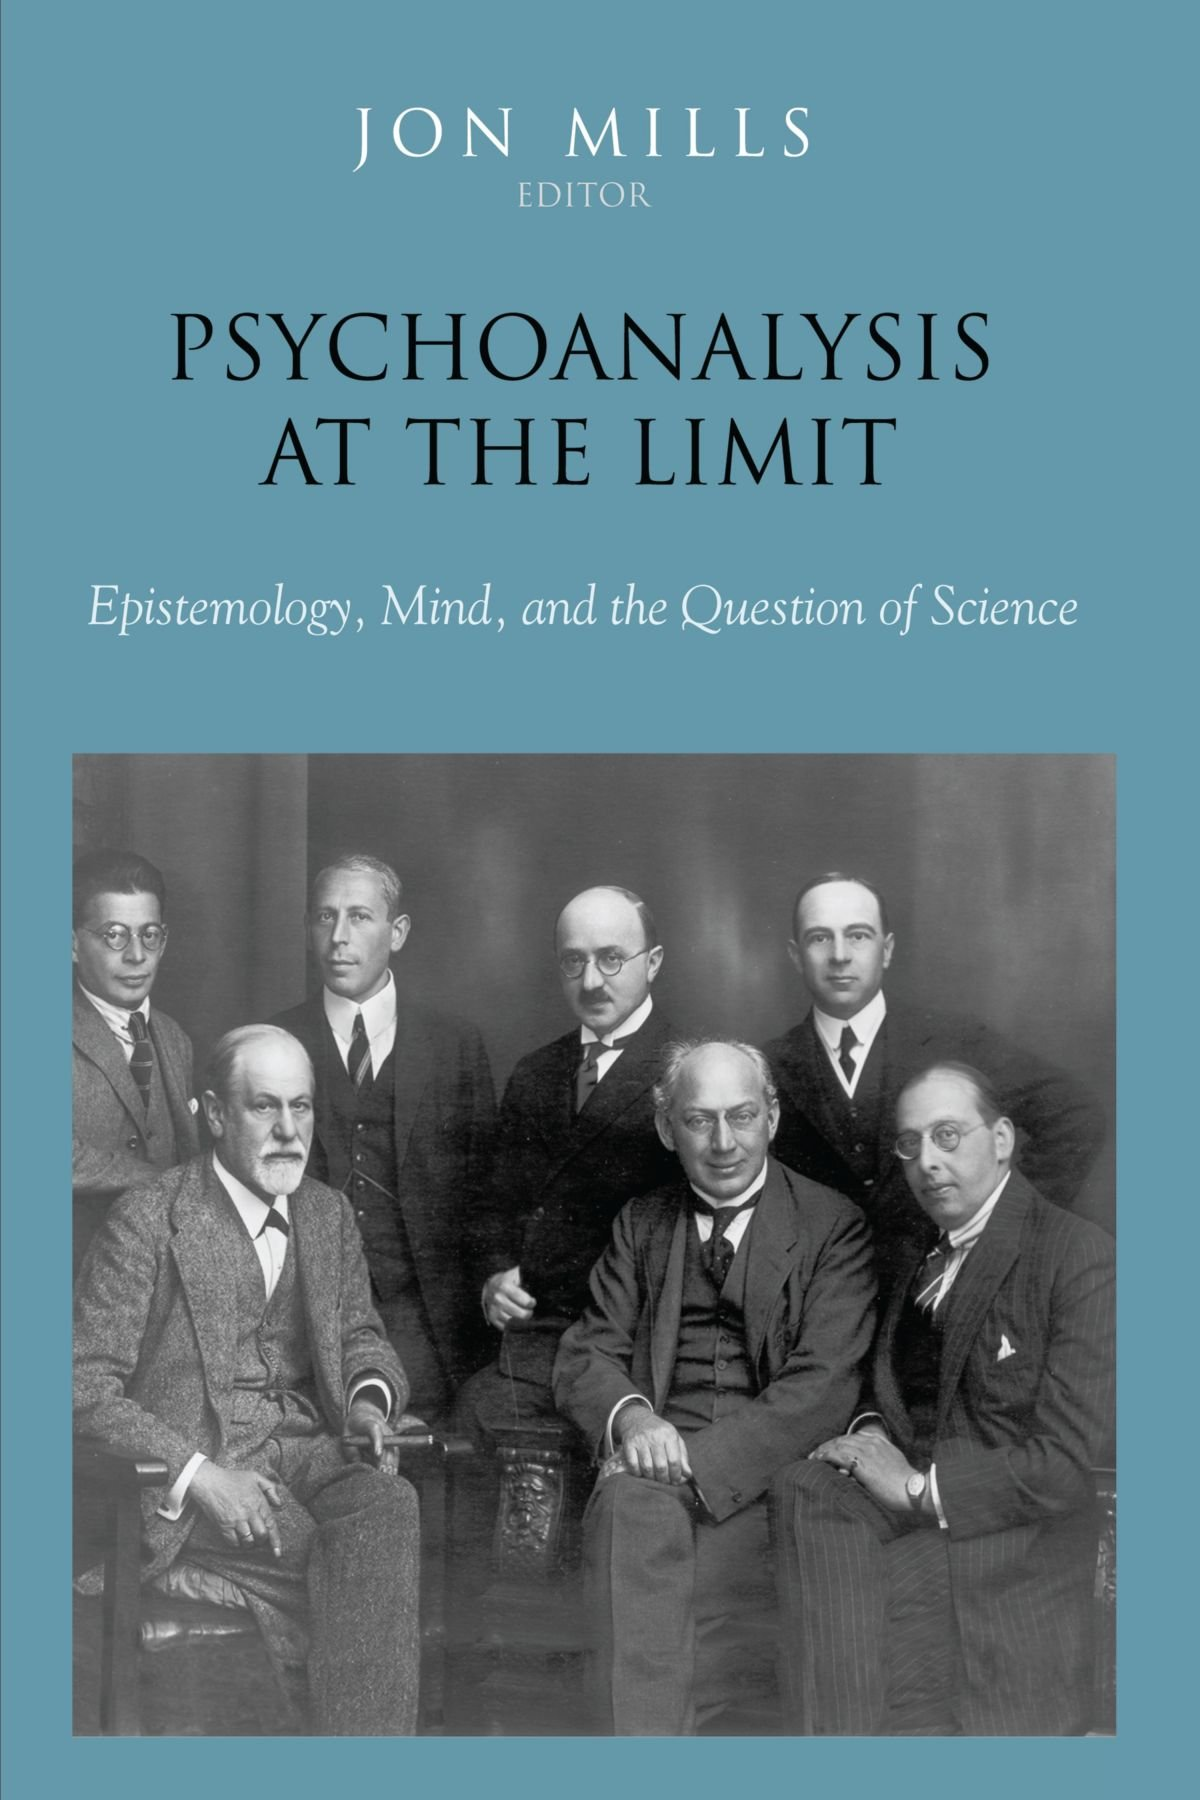 Psychoanalysis at the Limit: Epistemology, Mind, and the Question of Science ebook